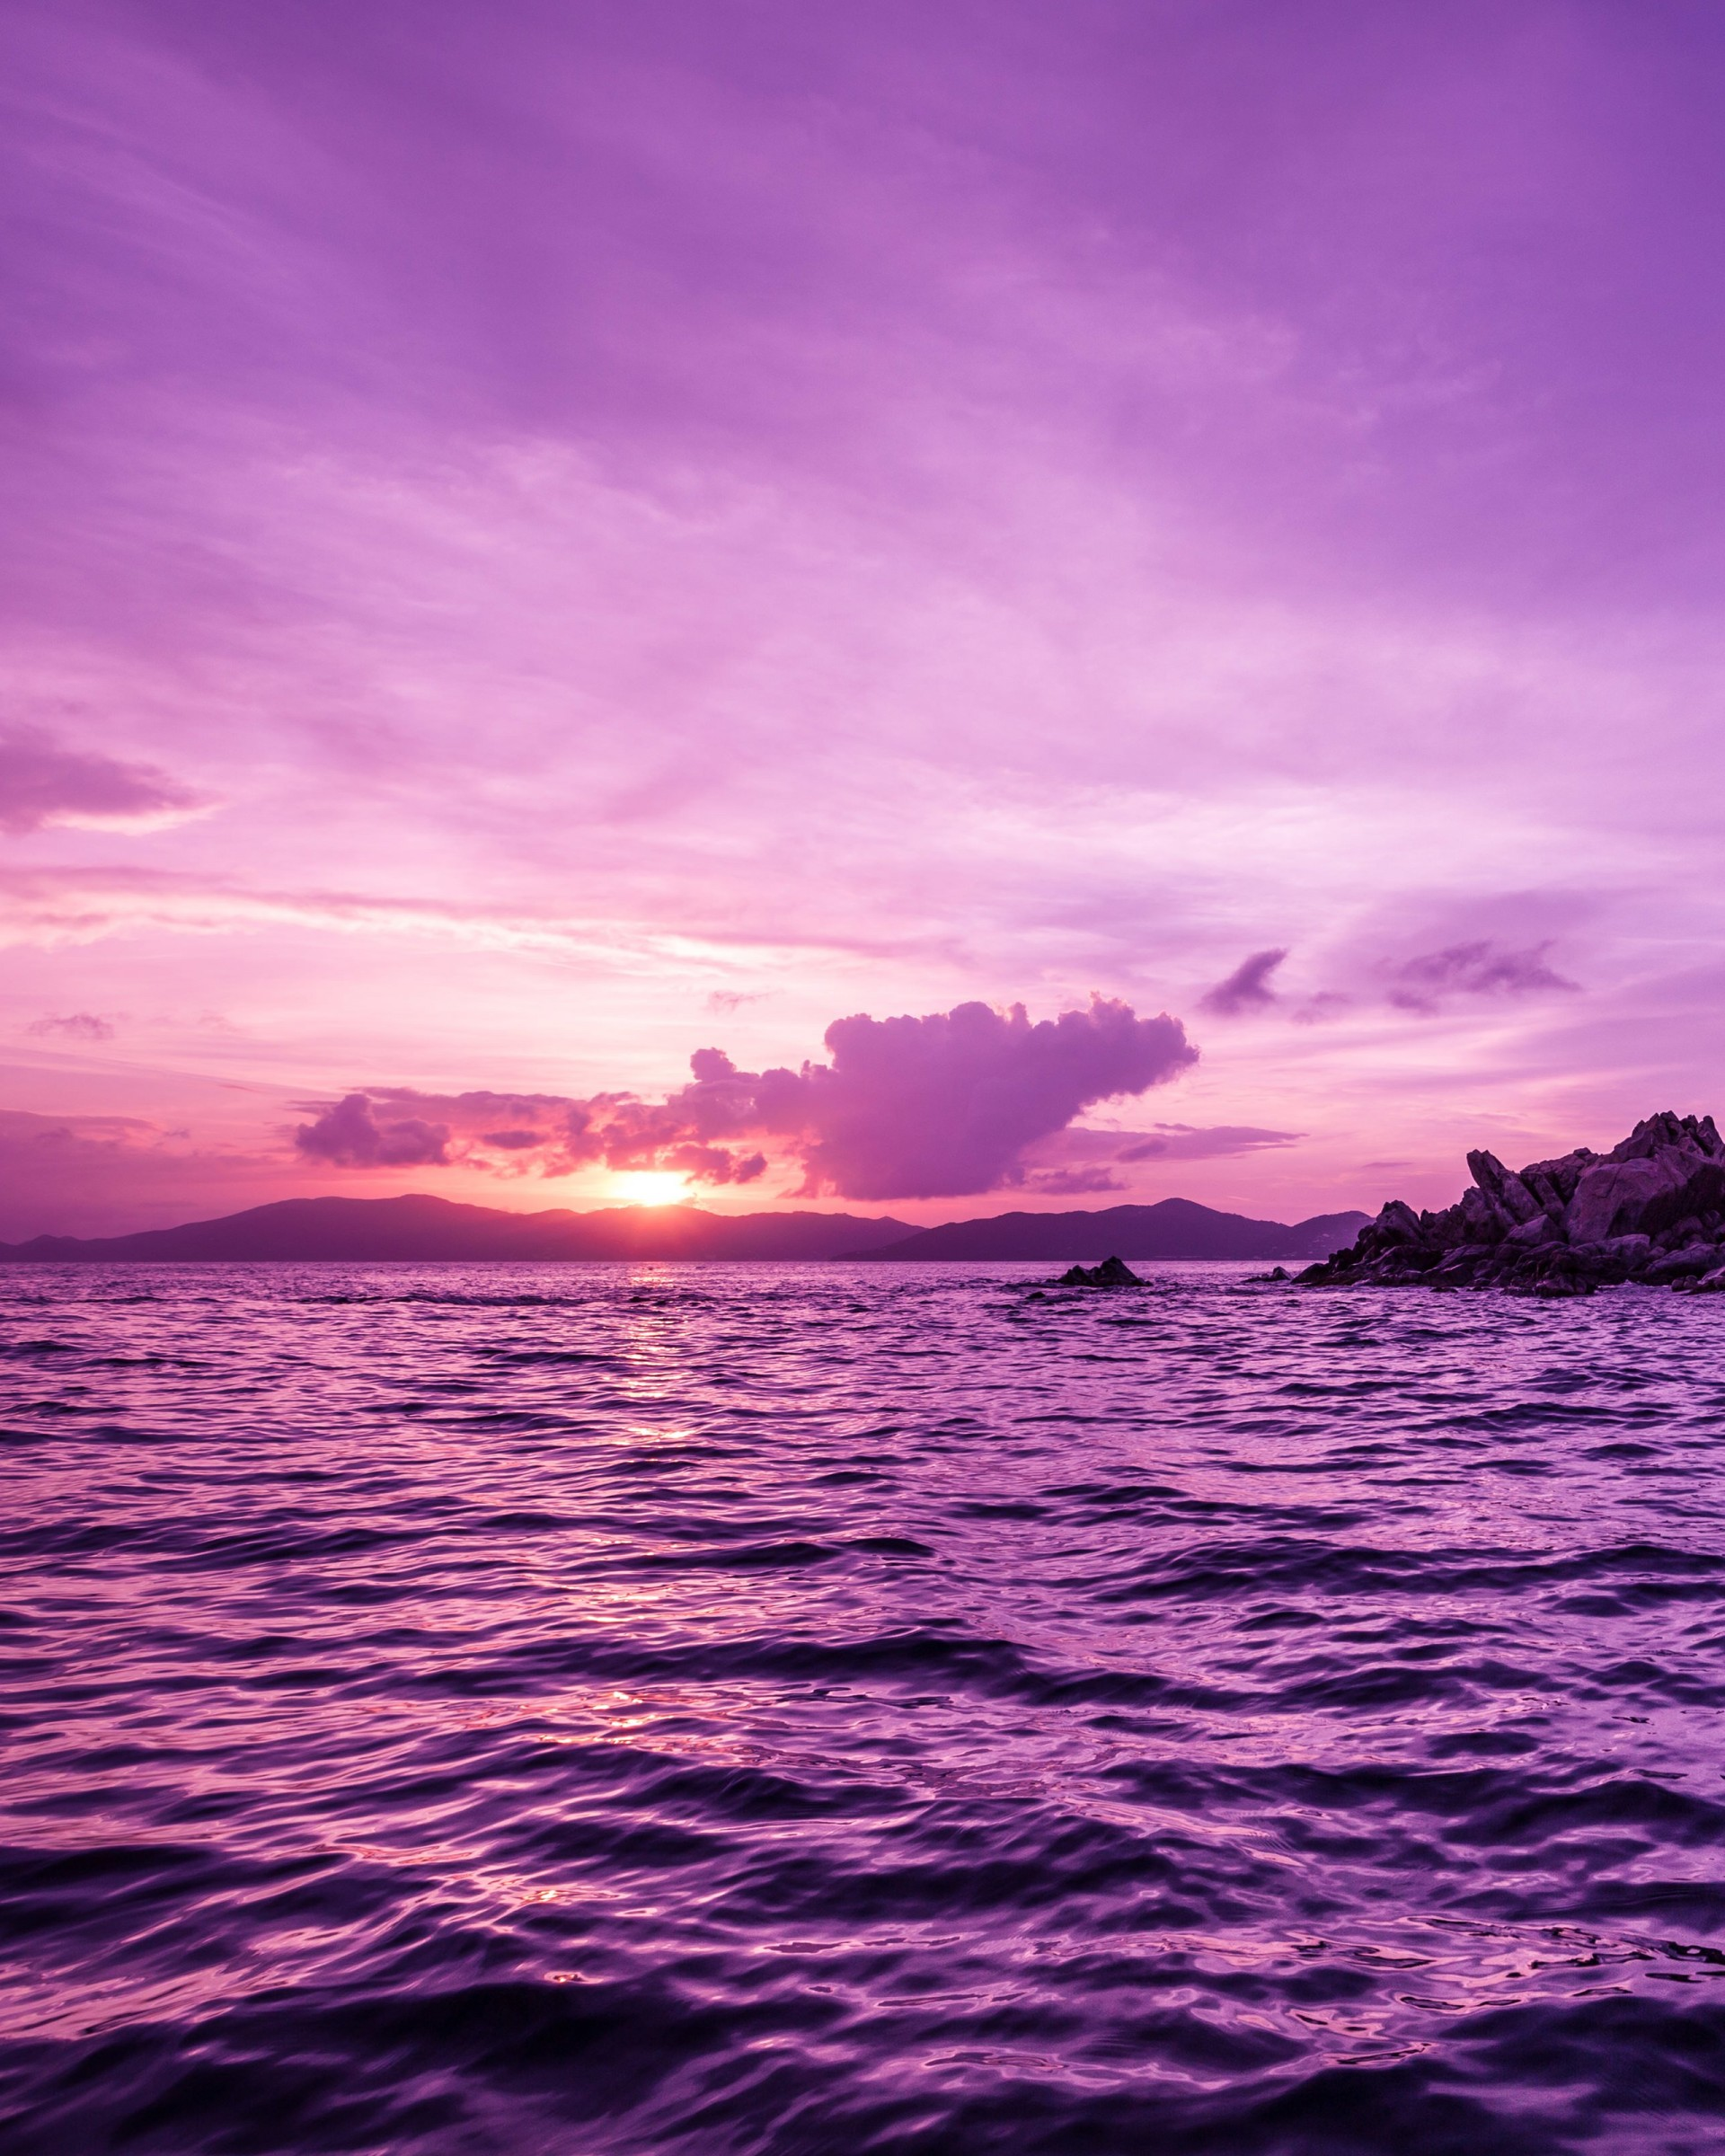 Pelican Island Sunset, British Virgin Islands Wallpaper for Google Nexus 7